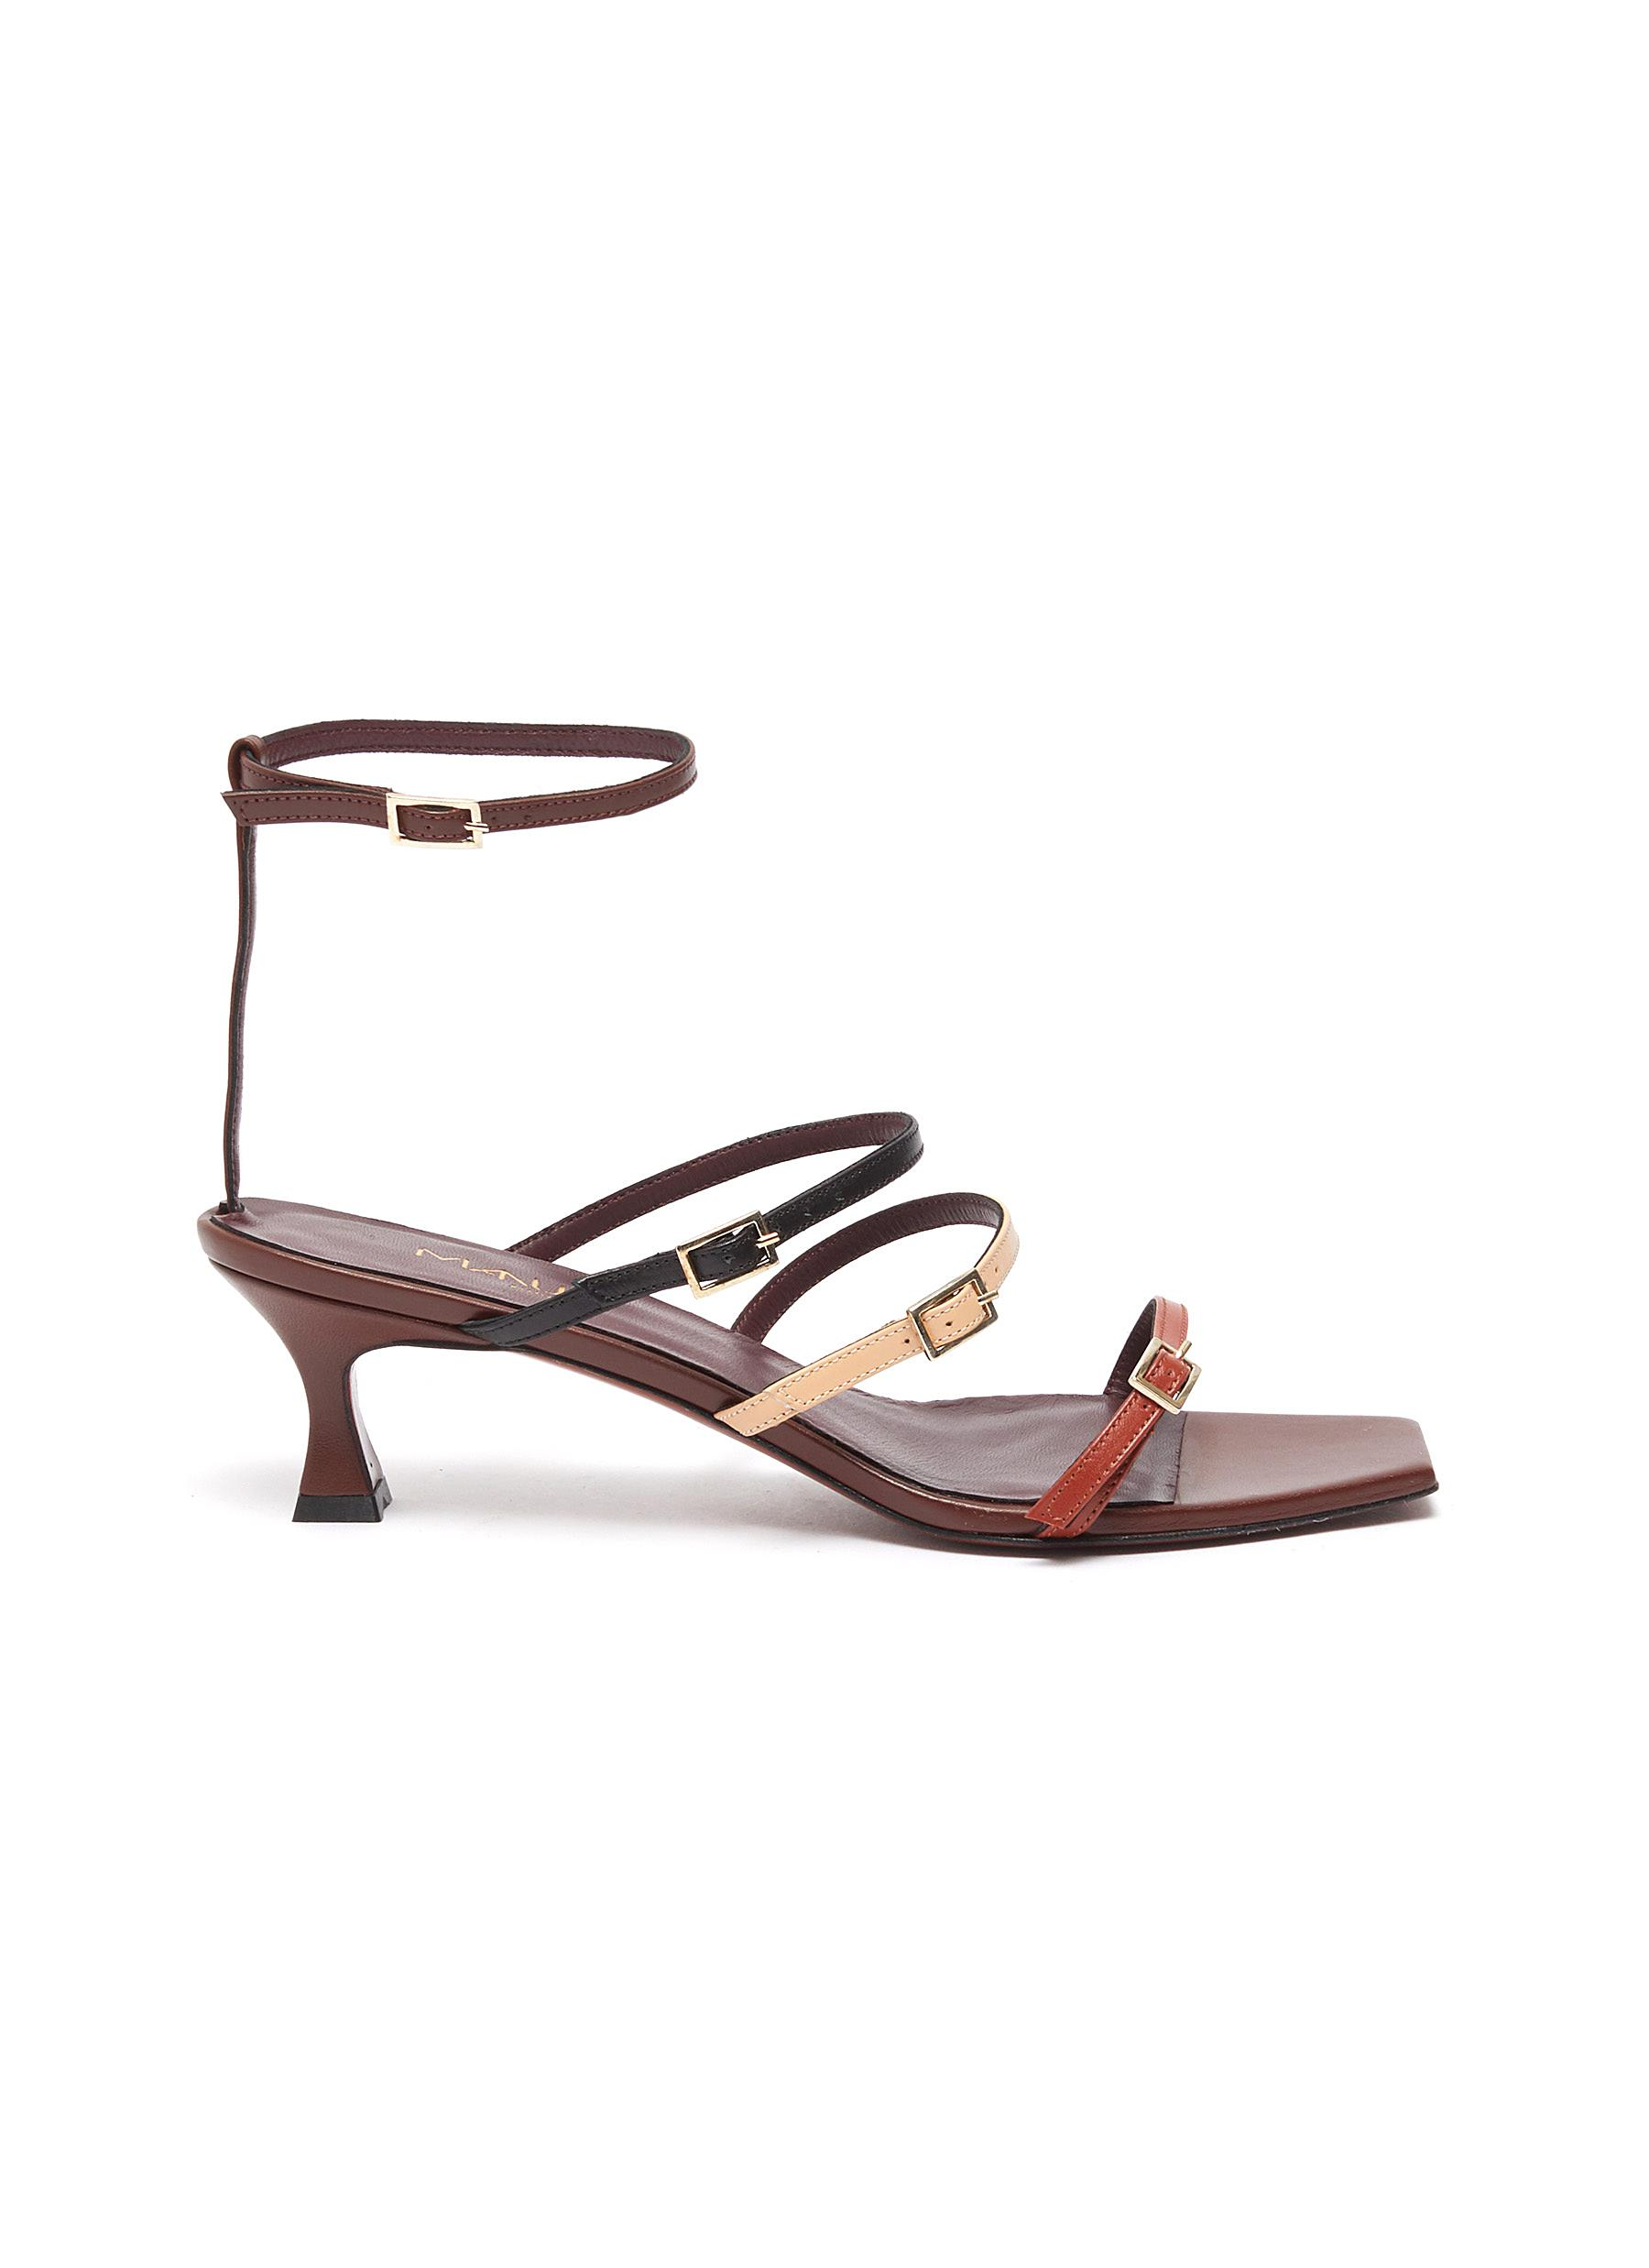 Naomi colourblock strappy leather sandals by Manu Atelier